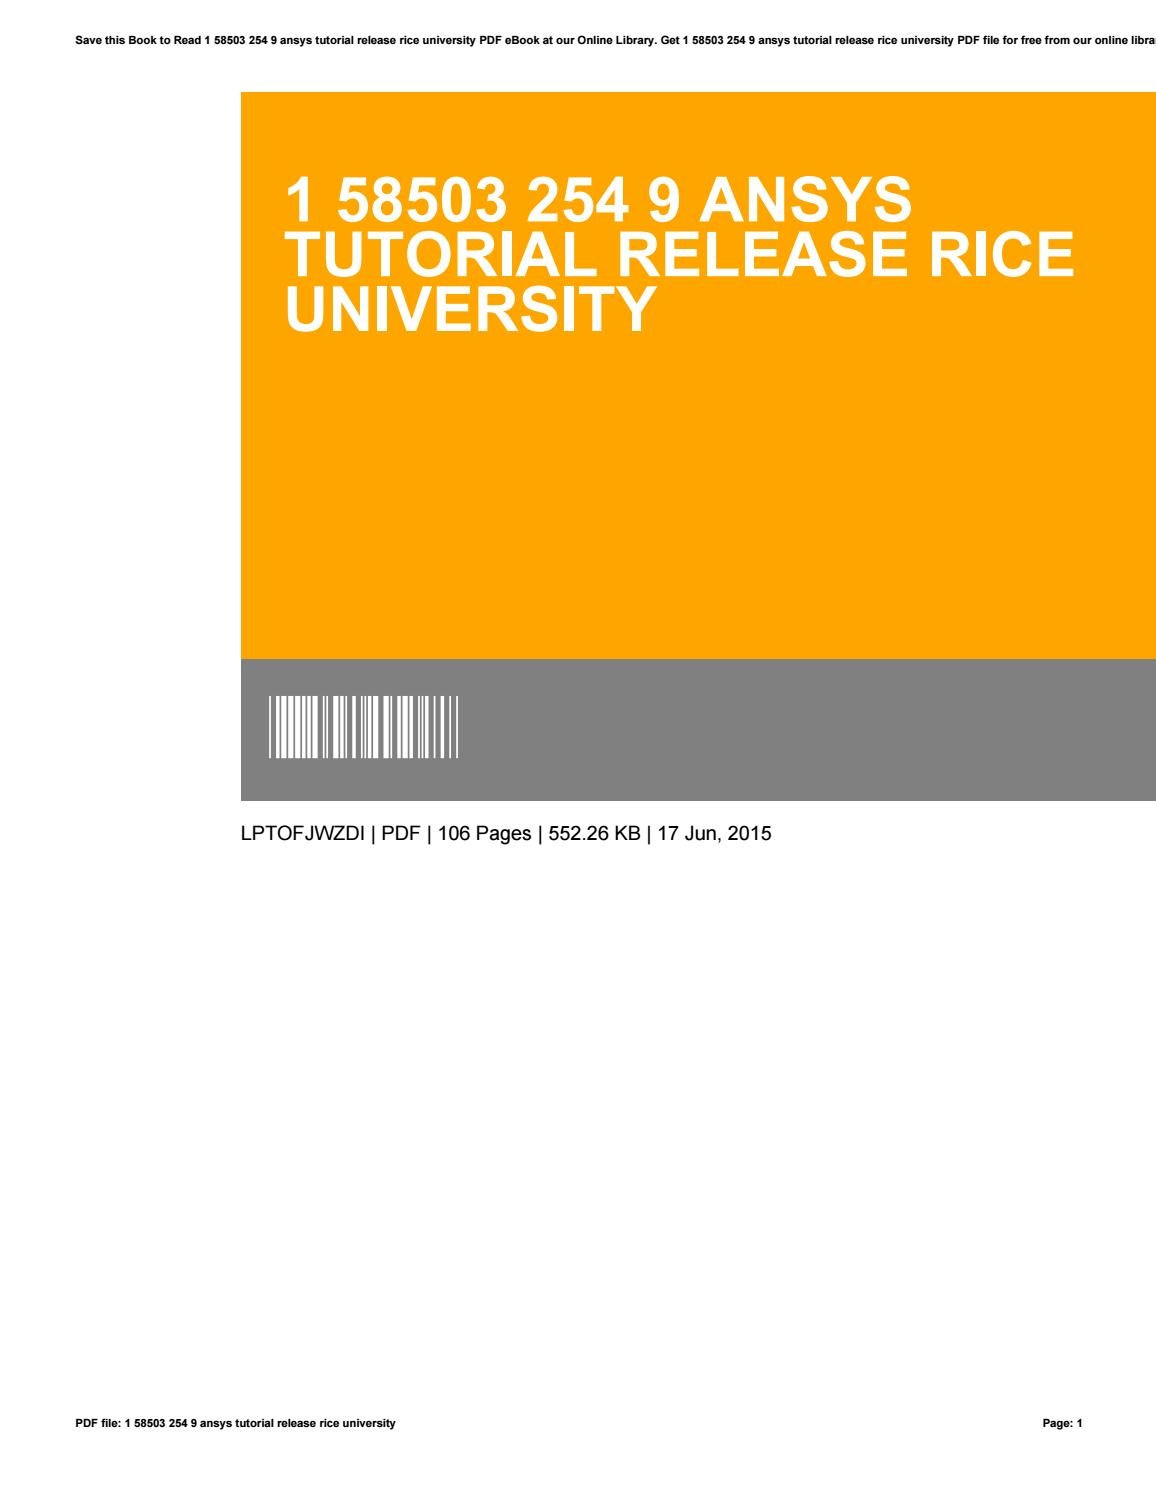 1 58503 254 9 ansys tutorial release rice university by